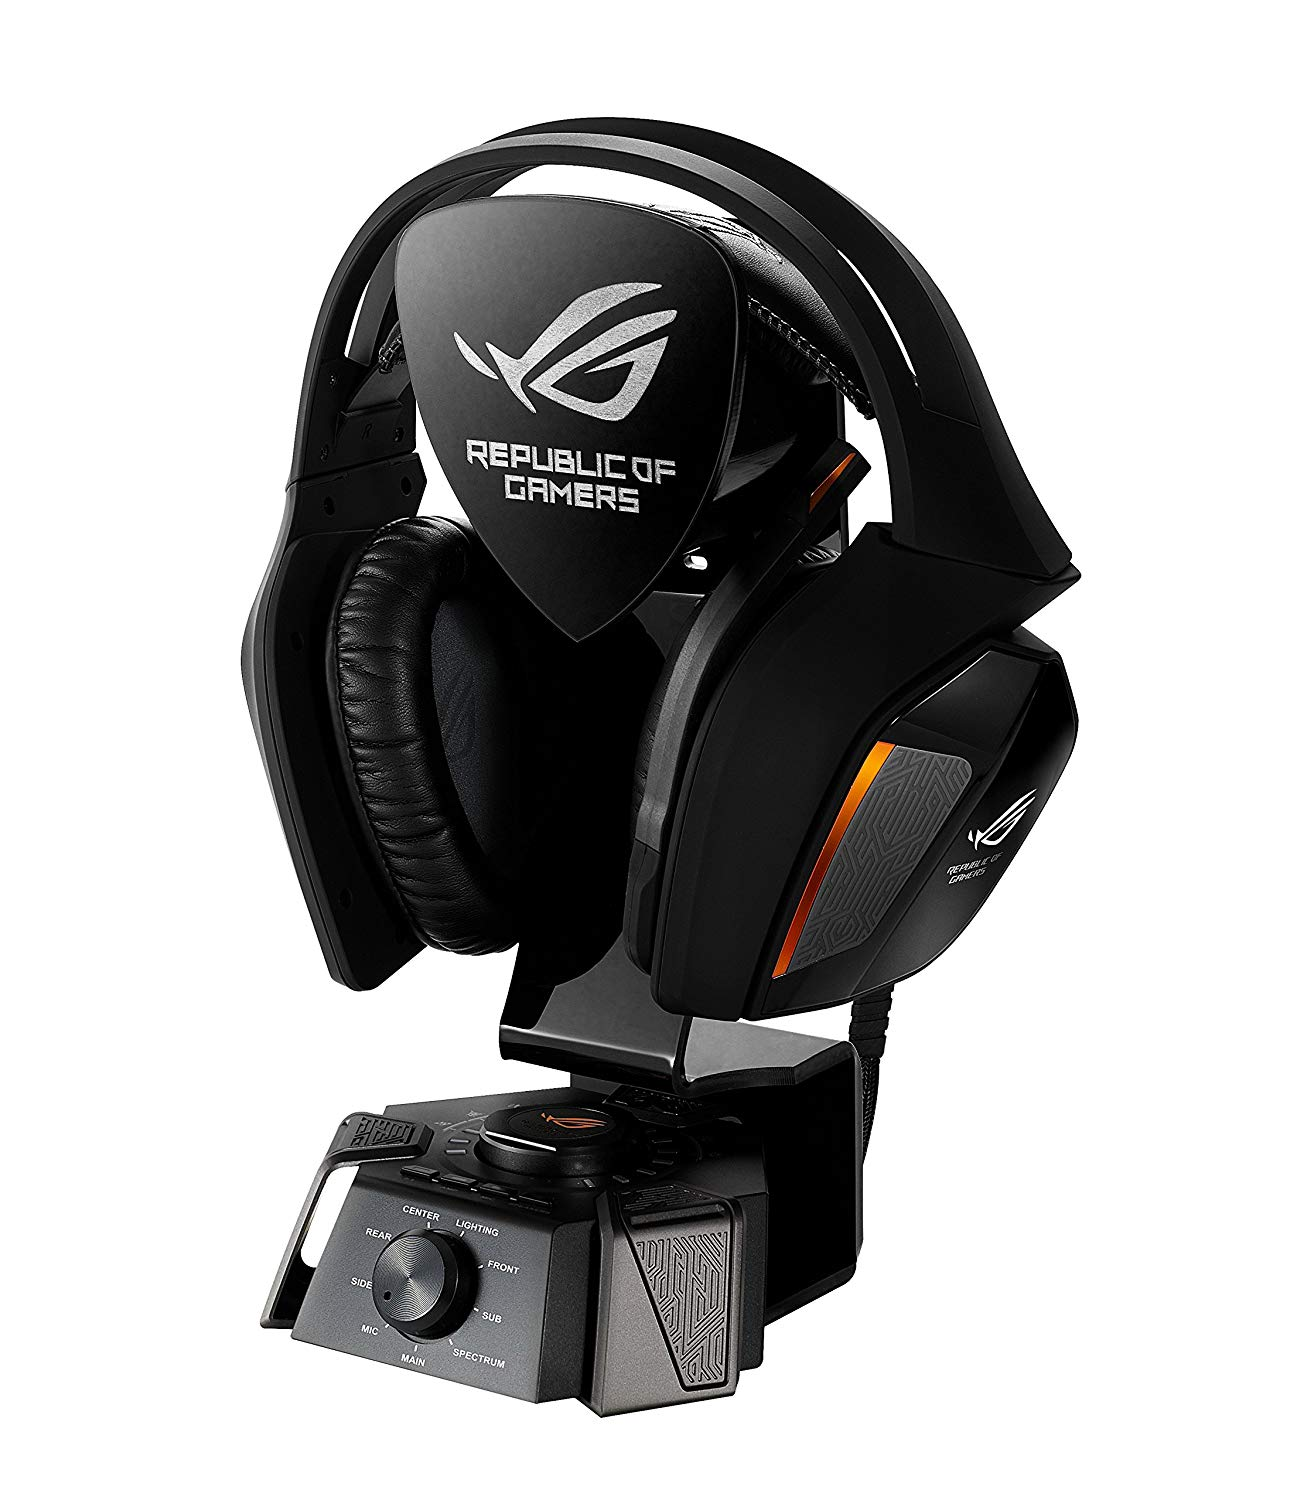 ASUS ROG Centurion True 7.1 Surround Gaming Headset for £184.99